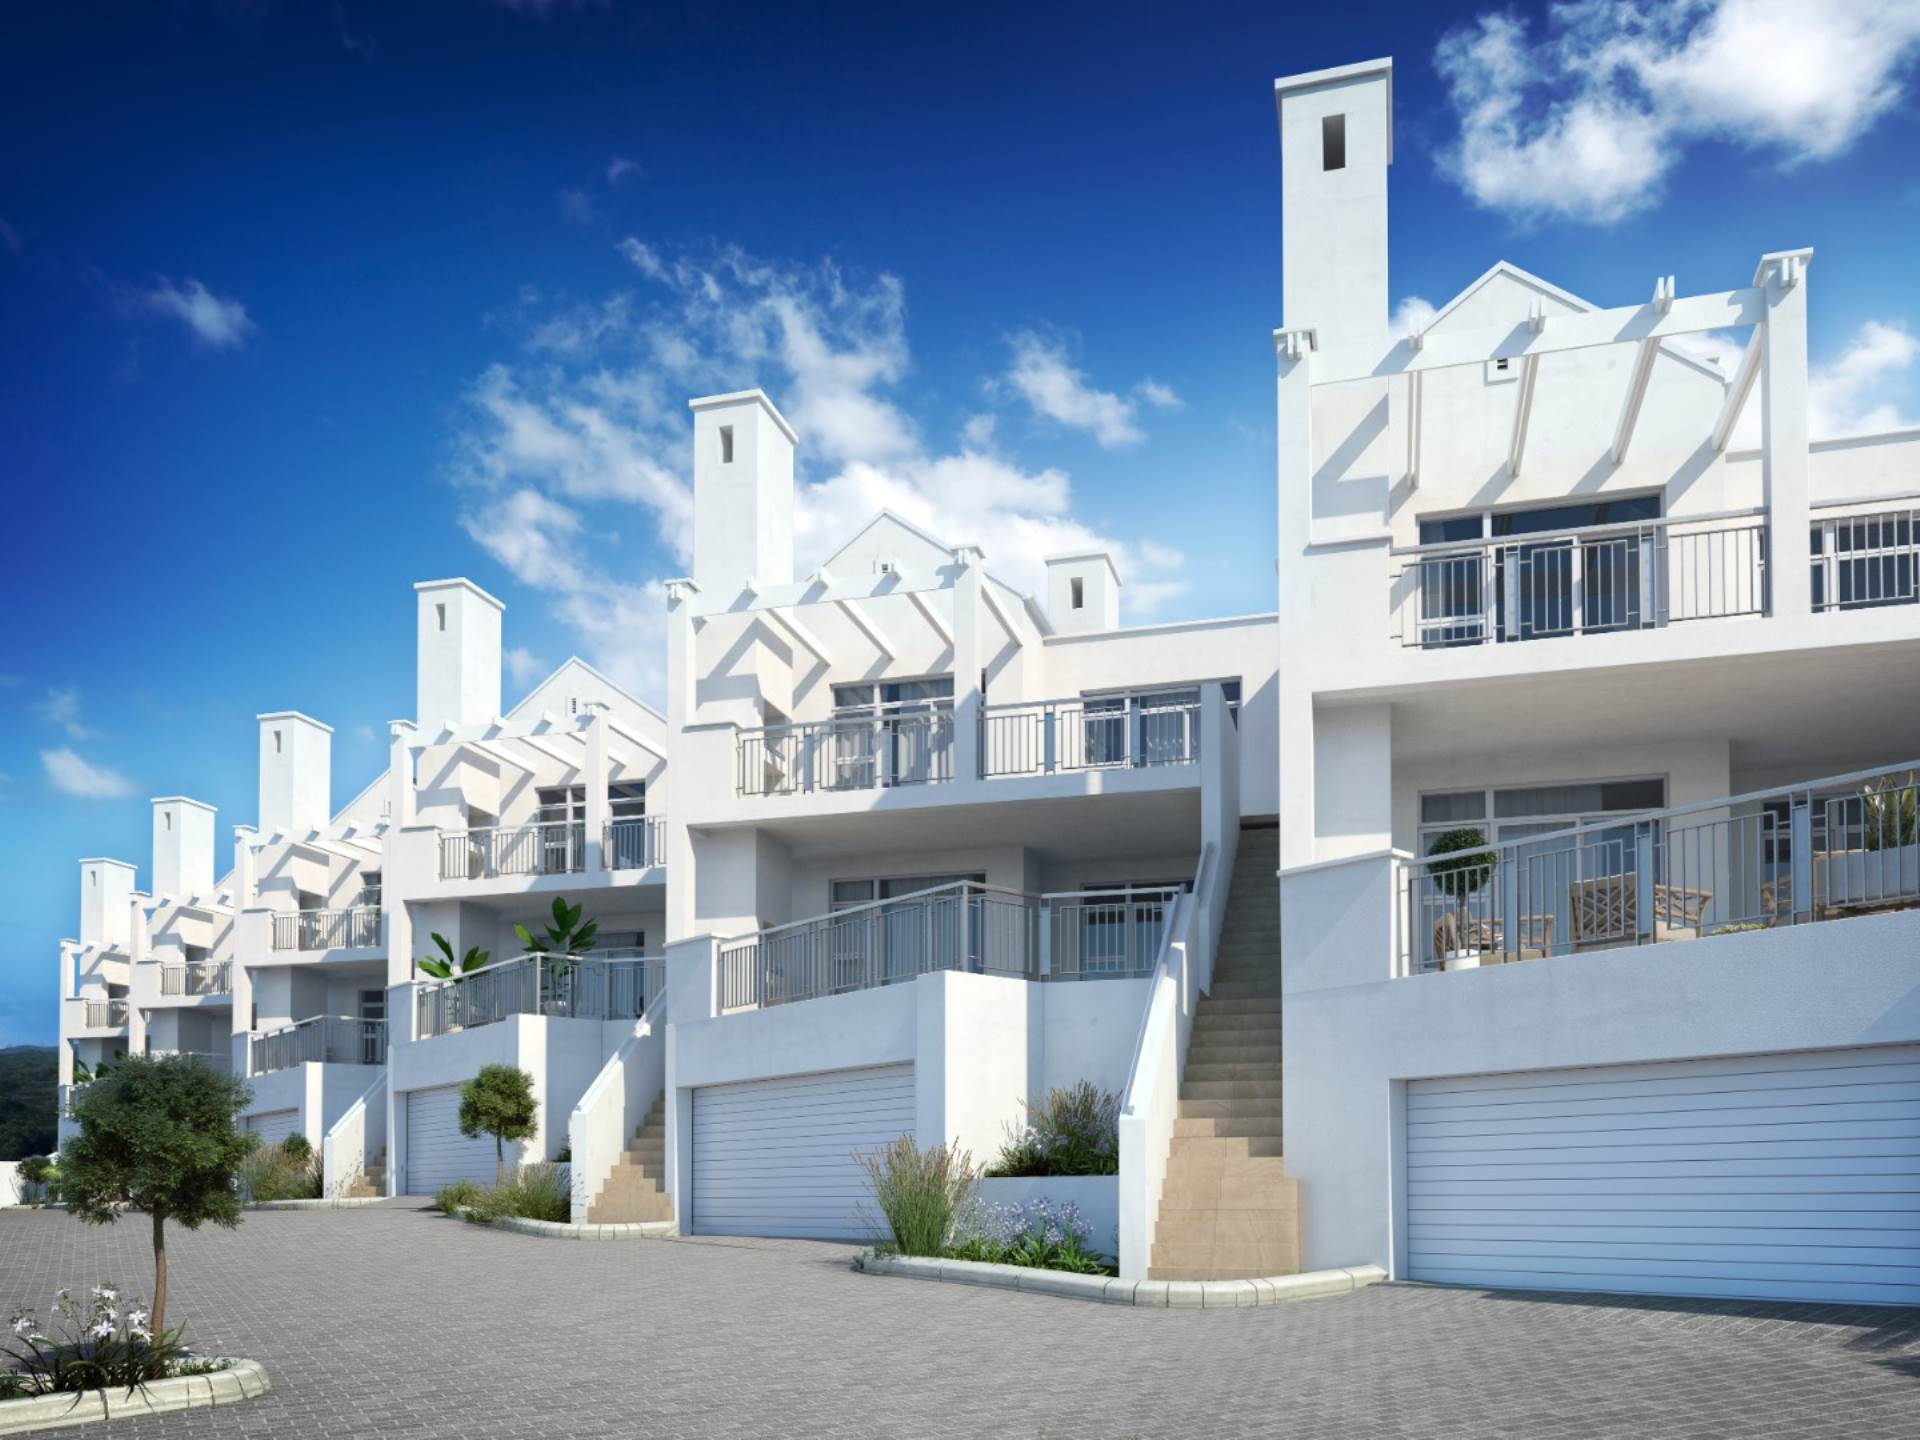 2 BedroomTownhouse To Rent In Big Bay